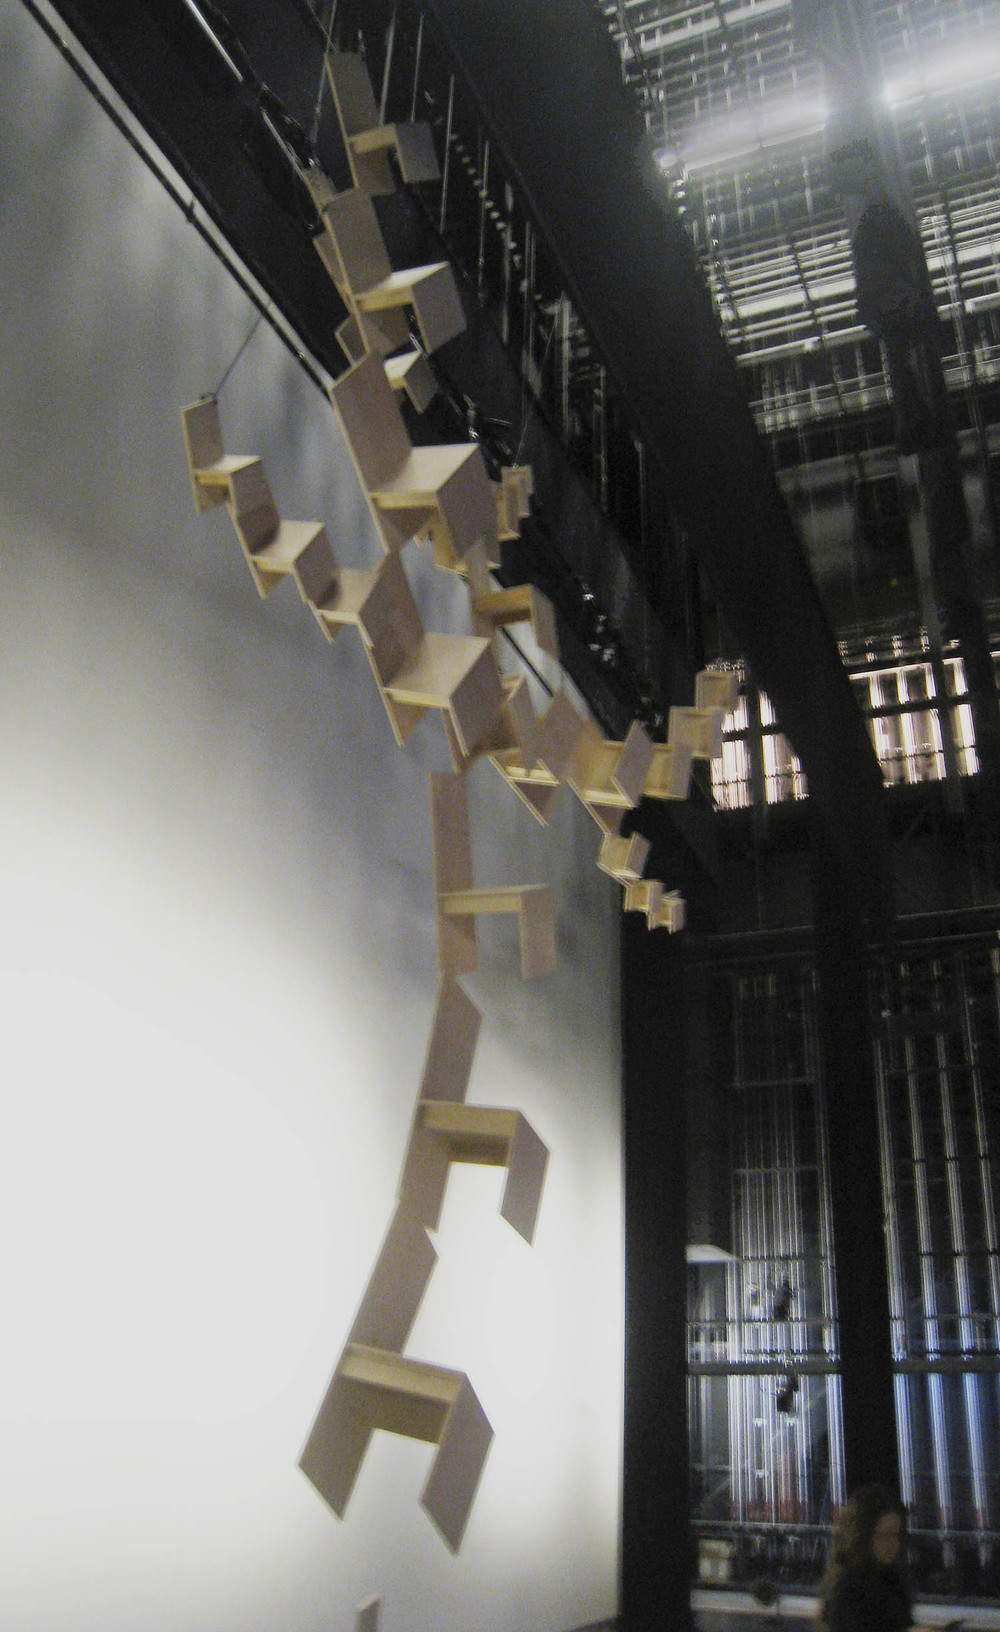 Backstage at the August Wilson Center, hanging the set-piece with airline cable.